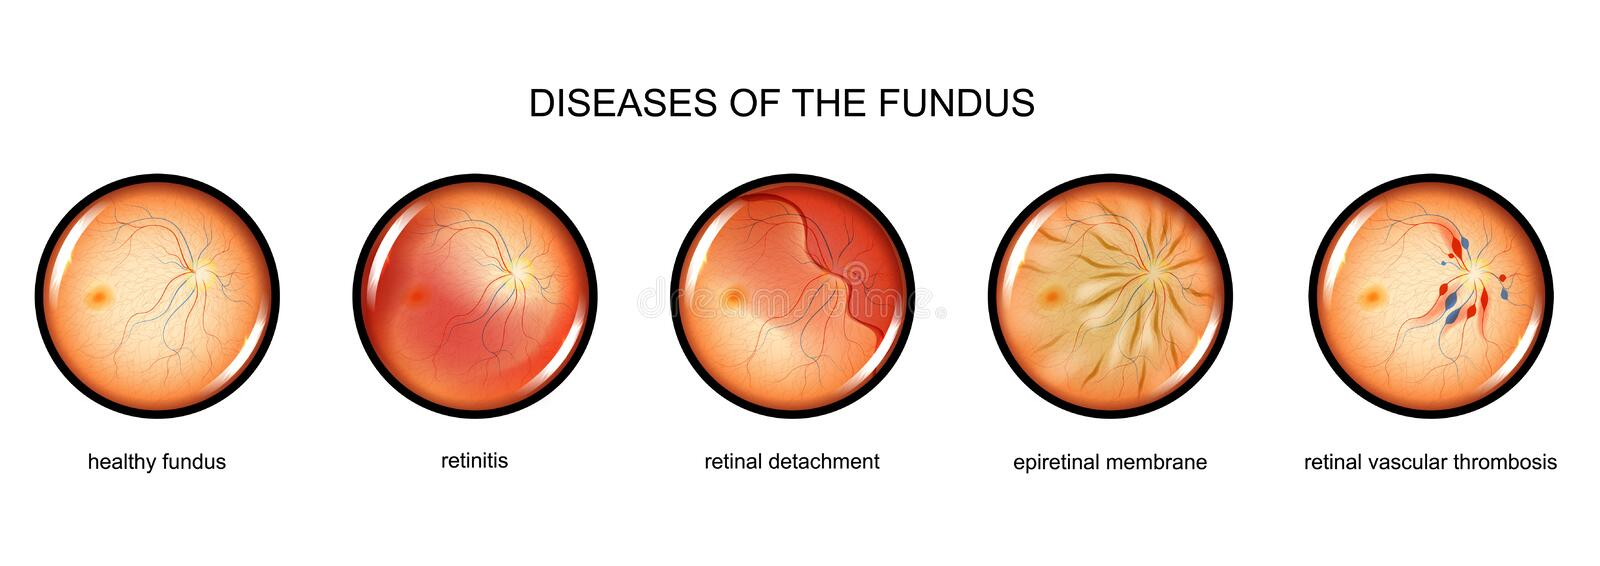 Inflammation of the fundus, retinal detachment. Vector illustration of fundus inflammation, retinal detachment royalty free illustration